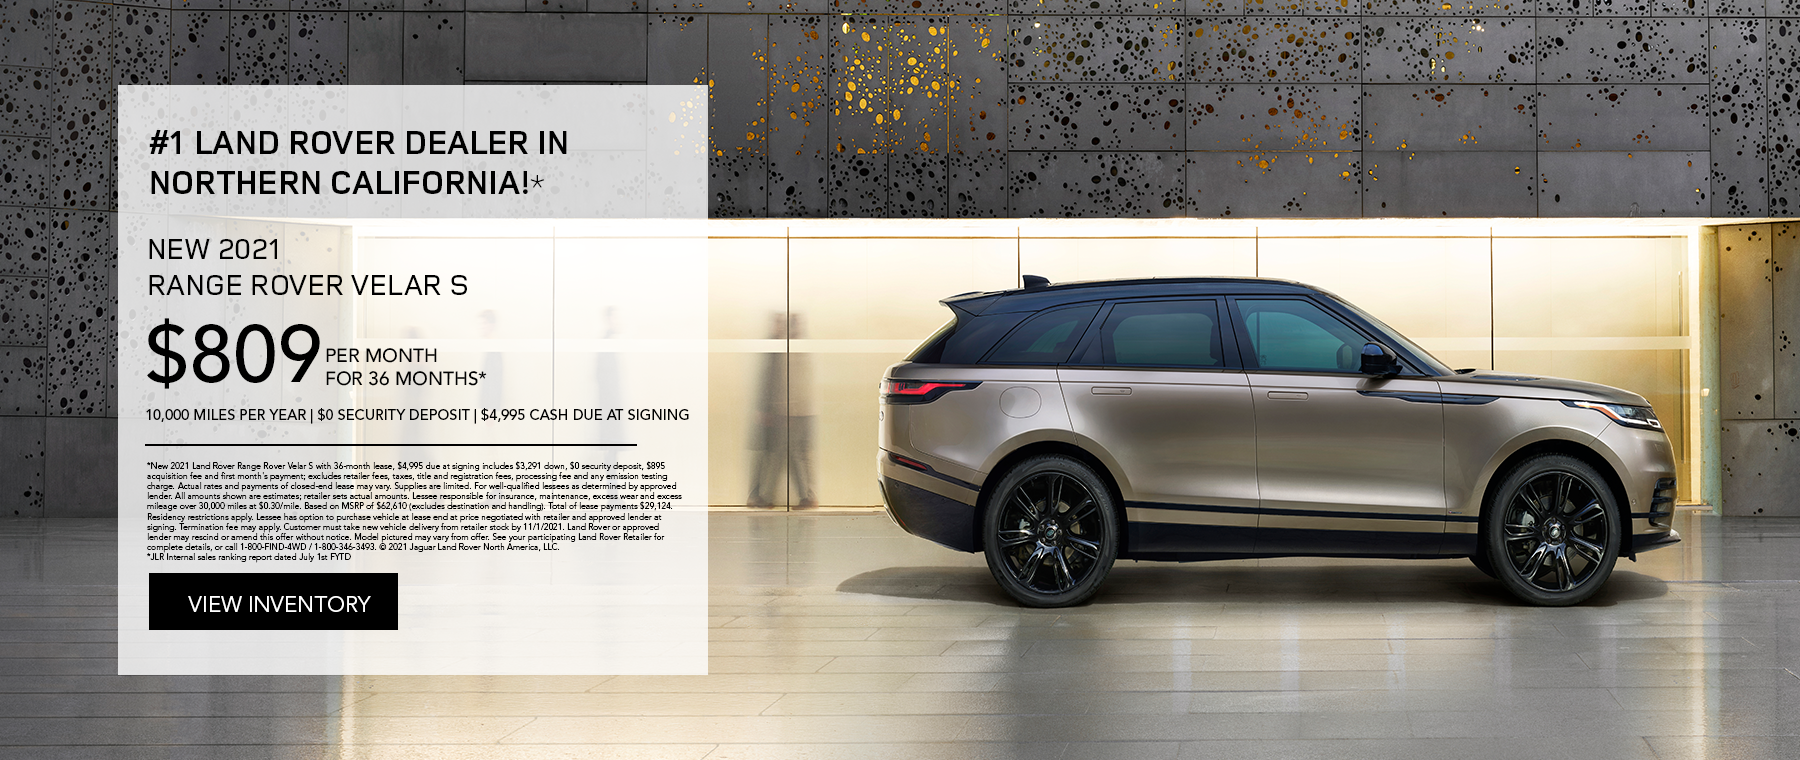 NEW 2021 RANGE ROVER VELAR S. $809 PER MONTH. 36 MONTH LEASE TERM. $4,995 CASH DUE AT SIGNING. $0 SECURITY DEPOSIT. 10,000 MILES PER YEAR. EXCLUDES RETAILER FEES, TAXES, TITLE AND REGISTRATION FEES, PROCESSING FEE AND ANY EMISSION TESTING CHARGE. OFFER ENDS 11/1/2021.